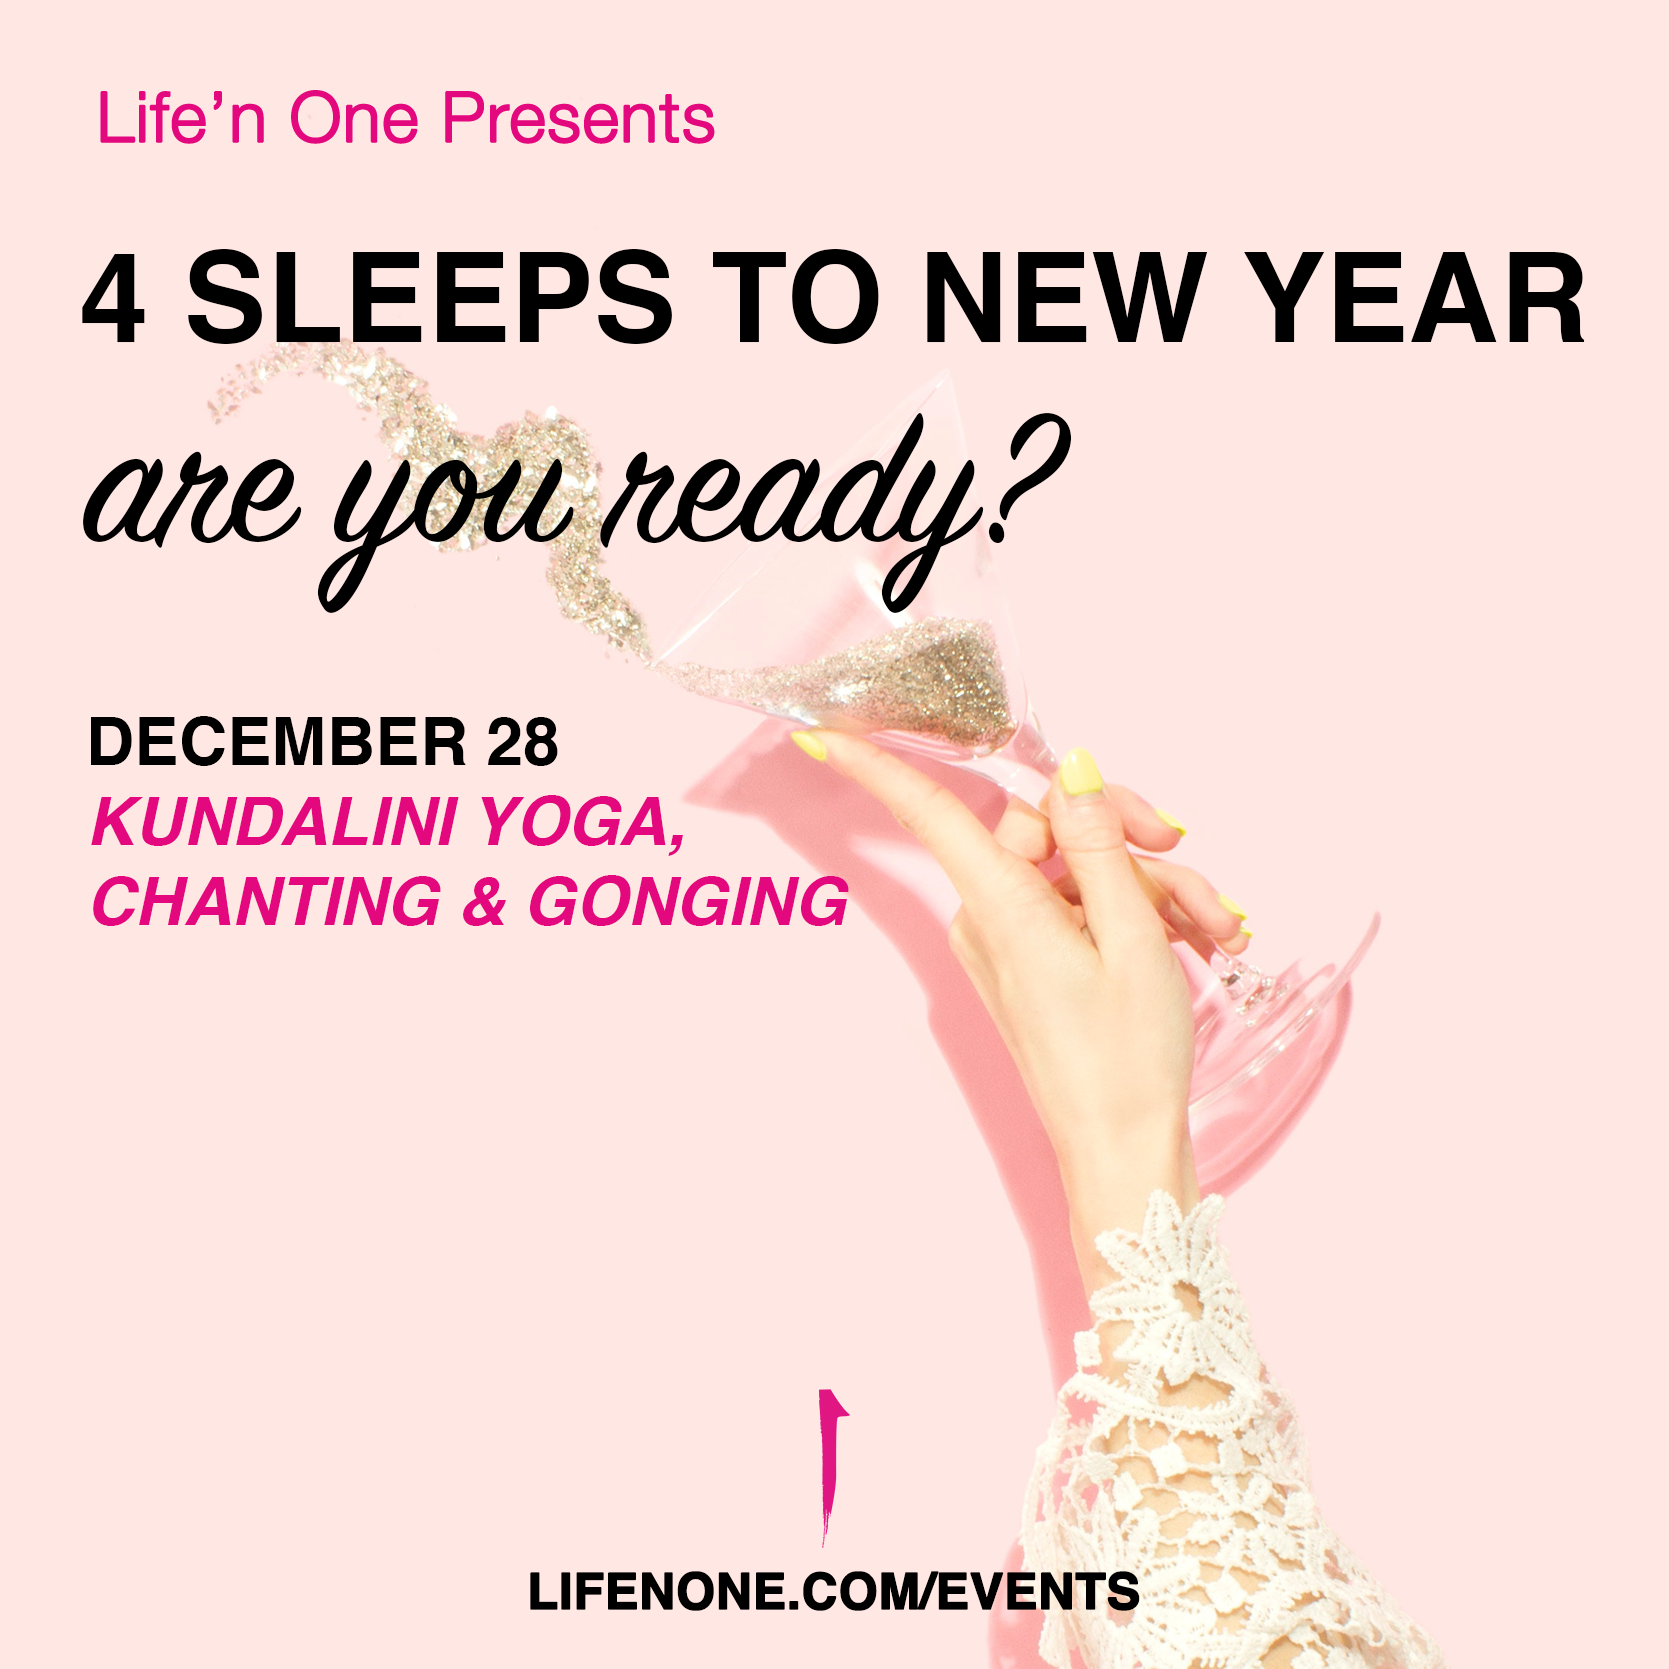 4 Sleeps to New Year - Are you Ready? // Kundalini Yoga, Chanting & Gonging